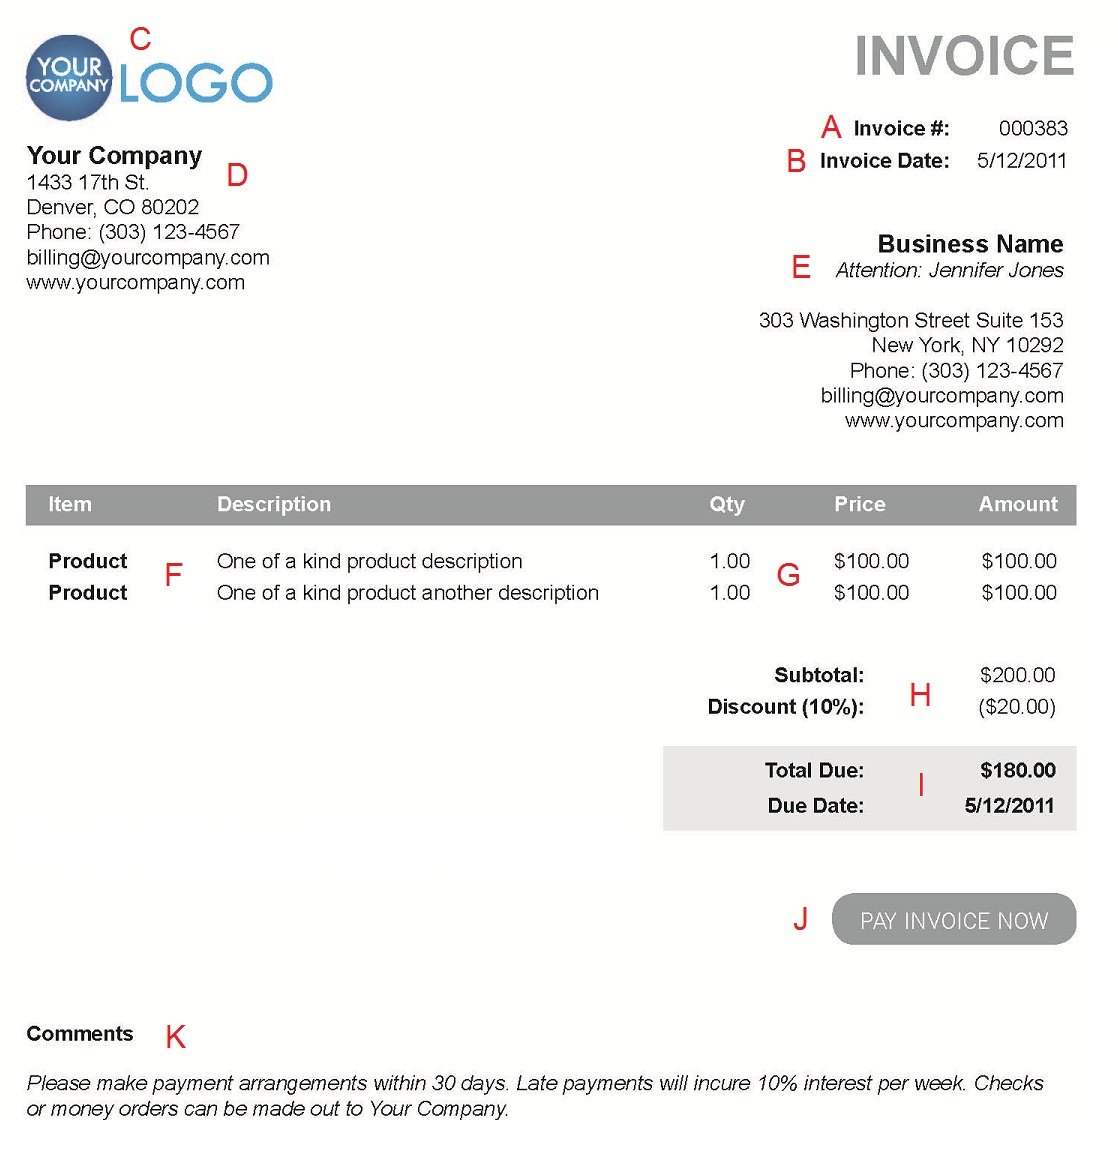 Atvingus  Remarkable The  Different Sections Of An Electronic Payment Invoice With Hot A  With Astounding Remit Invoice Also Auto Body Invoice Template In Addition Invoicing And Billing Software And Pending Invoice As Well As Commercial Invoice Pdf Fillable Additionally Legal Invoice Sample From Paysimplecom With Atvingus  Hot The  Different Sections Of An Electronic Payment Invoice With Astounding A  And Remarkable Remit Invoice Also Auto Body Invoice Template In Addition Invoicing And Billing Software From Paysimplecom